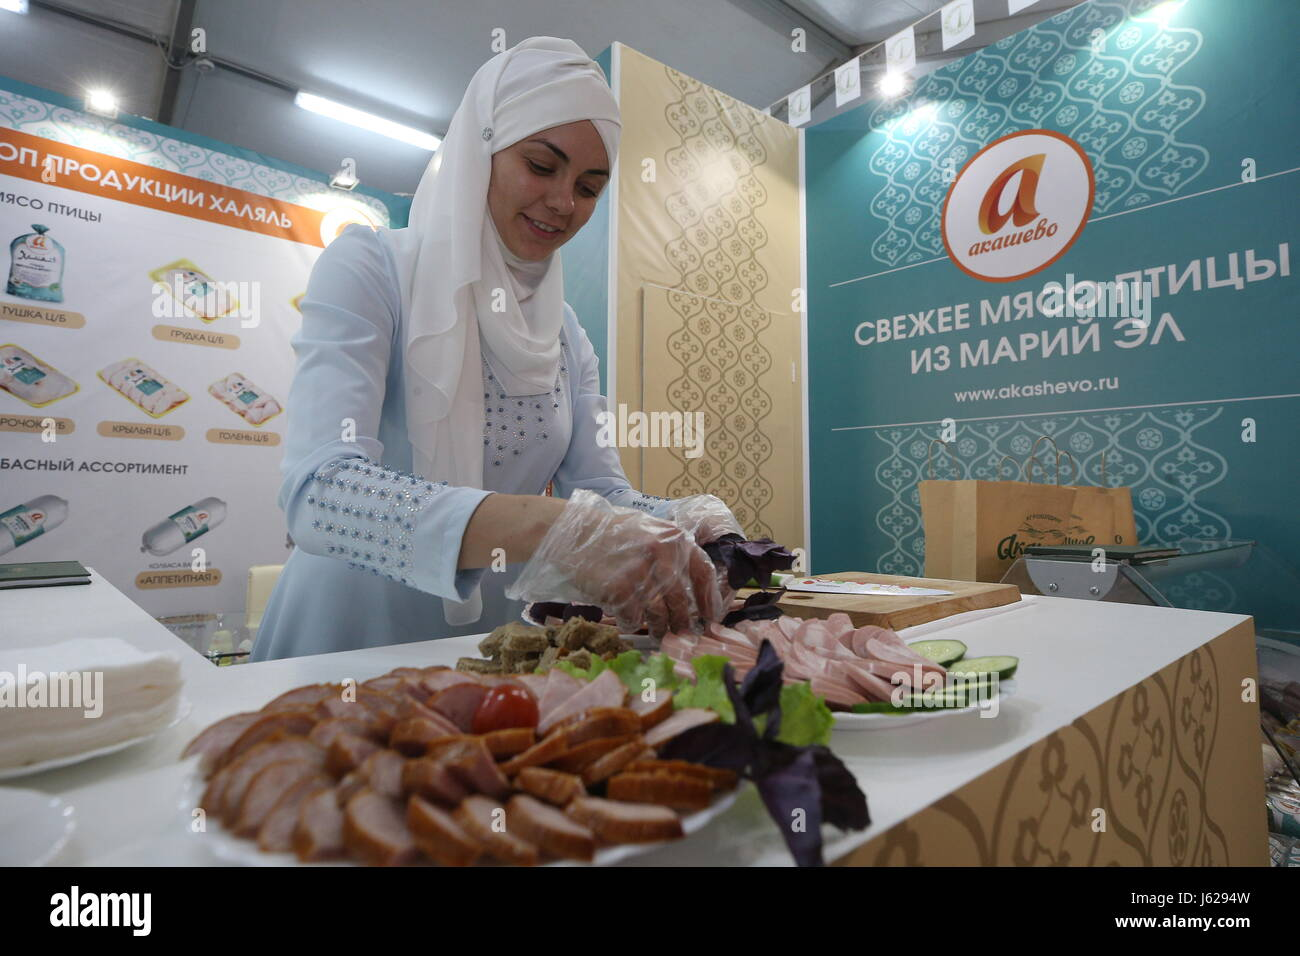 Kazan, Russia. 18th May, 2017. A woman at the Akashevo stand at the Russia Halal Expo exhibition as part of the - Stock Image